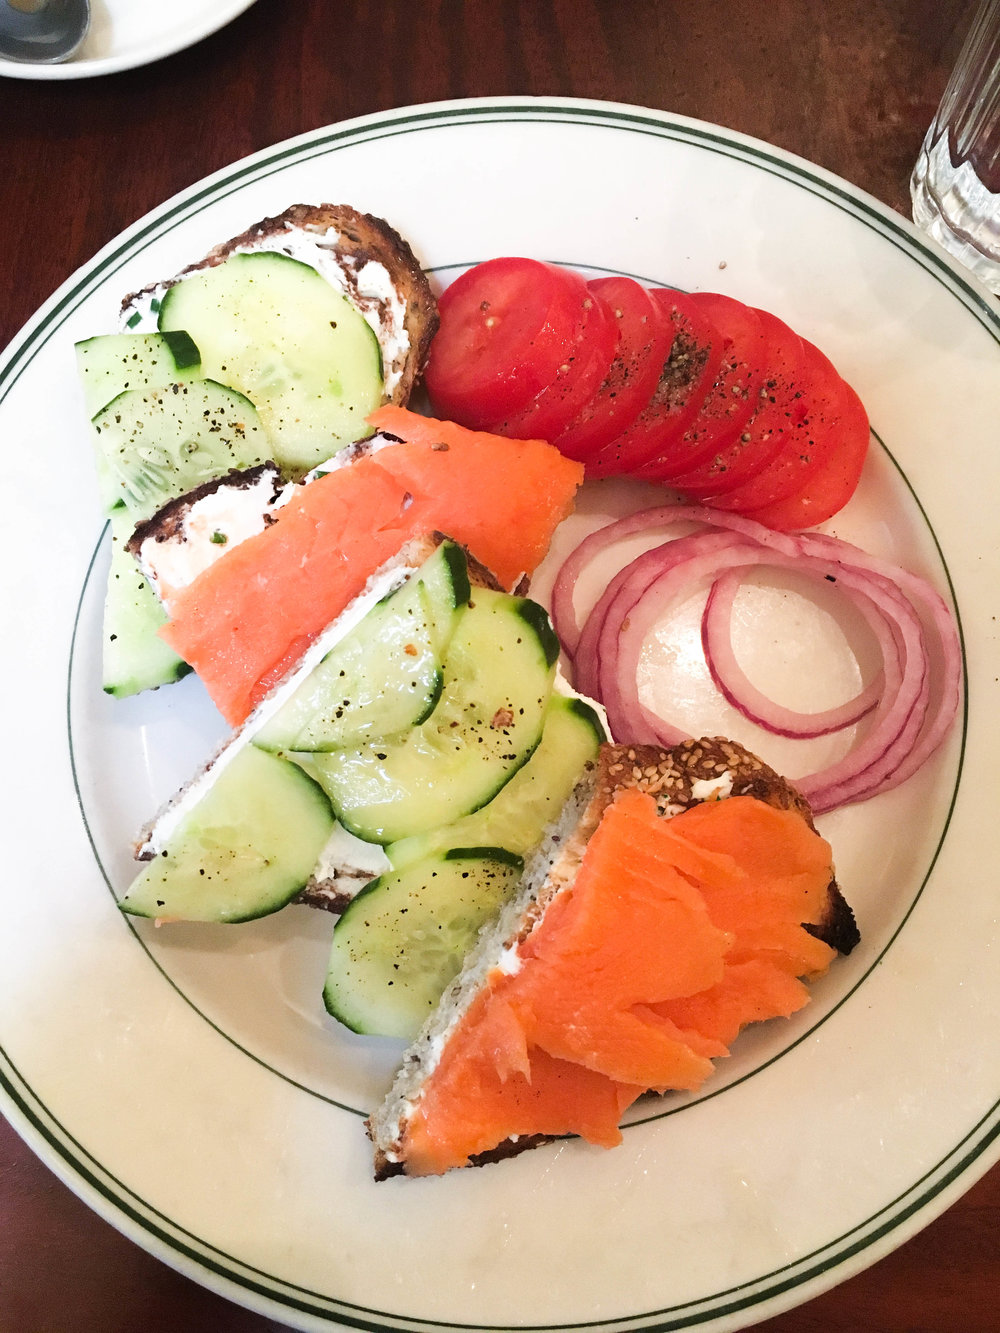 Scott's smoked salmon and cucumber toast with chive cream cheese. We were definitely on a toast kick.